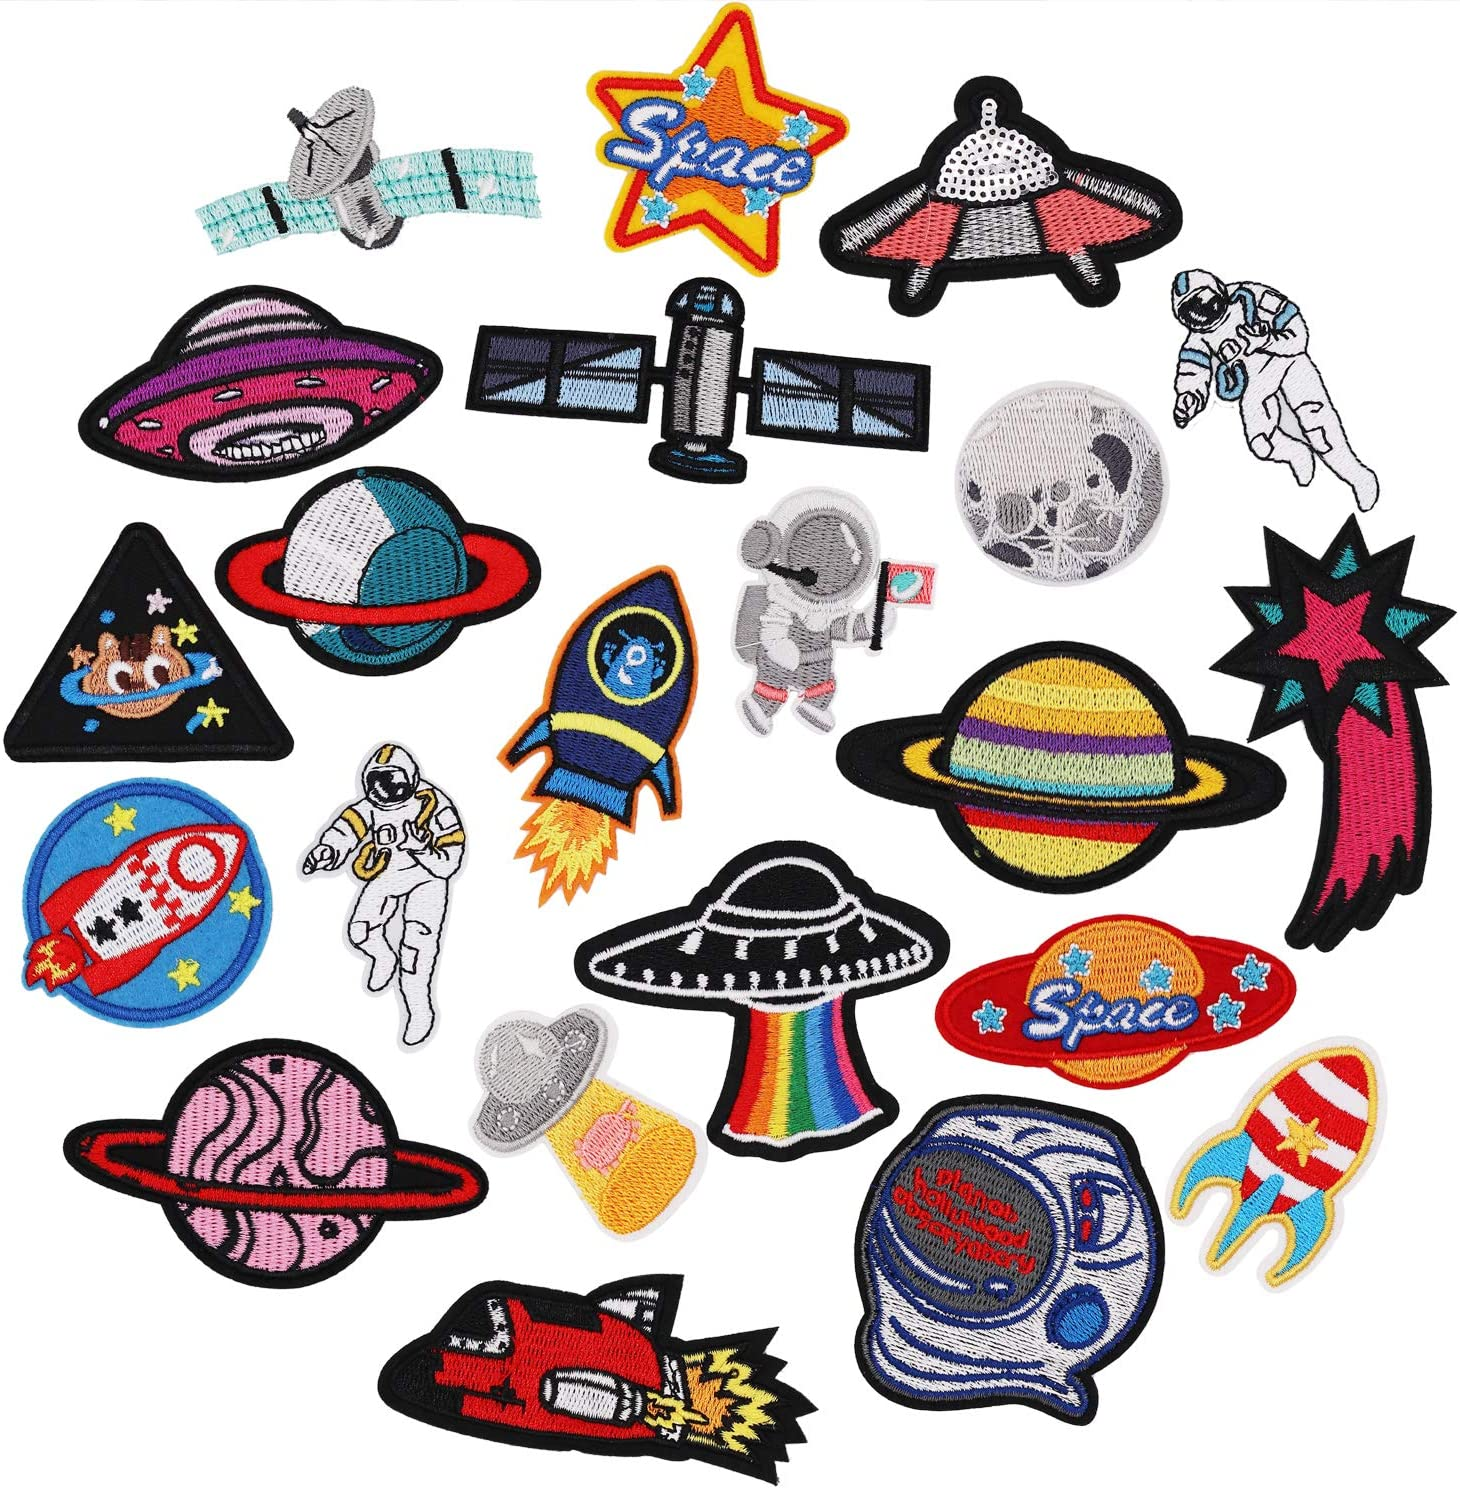 IRON ON Your own artwork 20 Custom Patches Up to 10 Colors